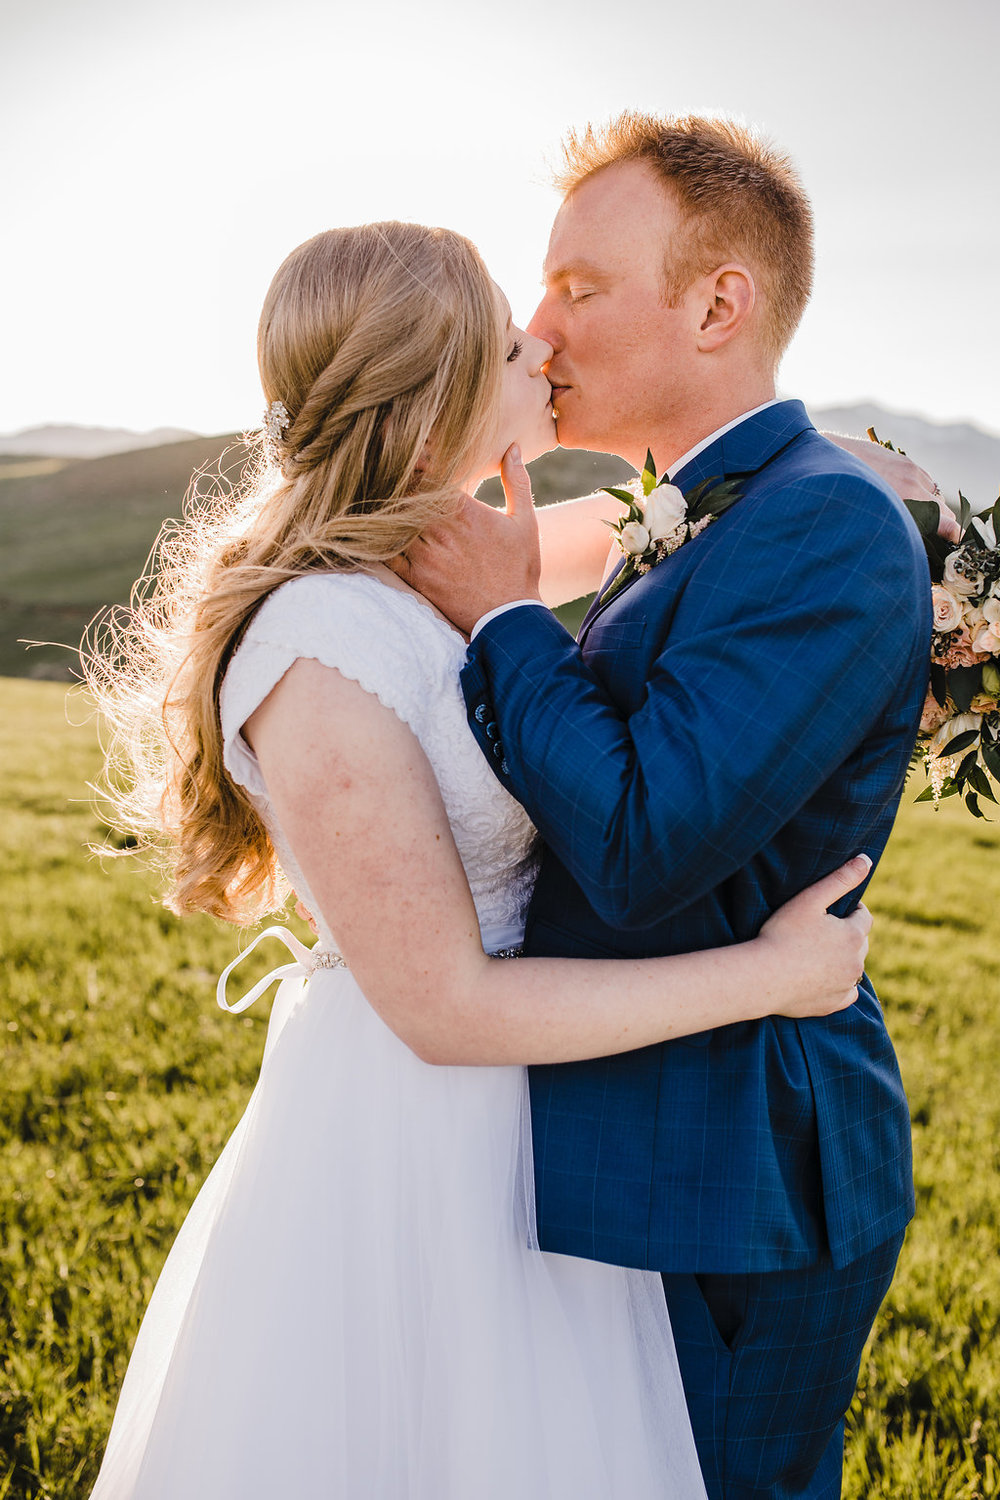 northern utah wedding photographer calli richards navy blue suit bride and groom wedding dress flowing lace short sleeves modest lds wedding dress northern utah couple